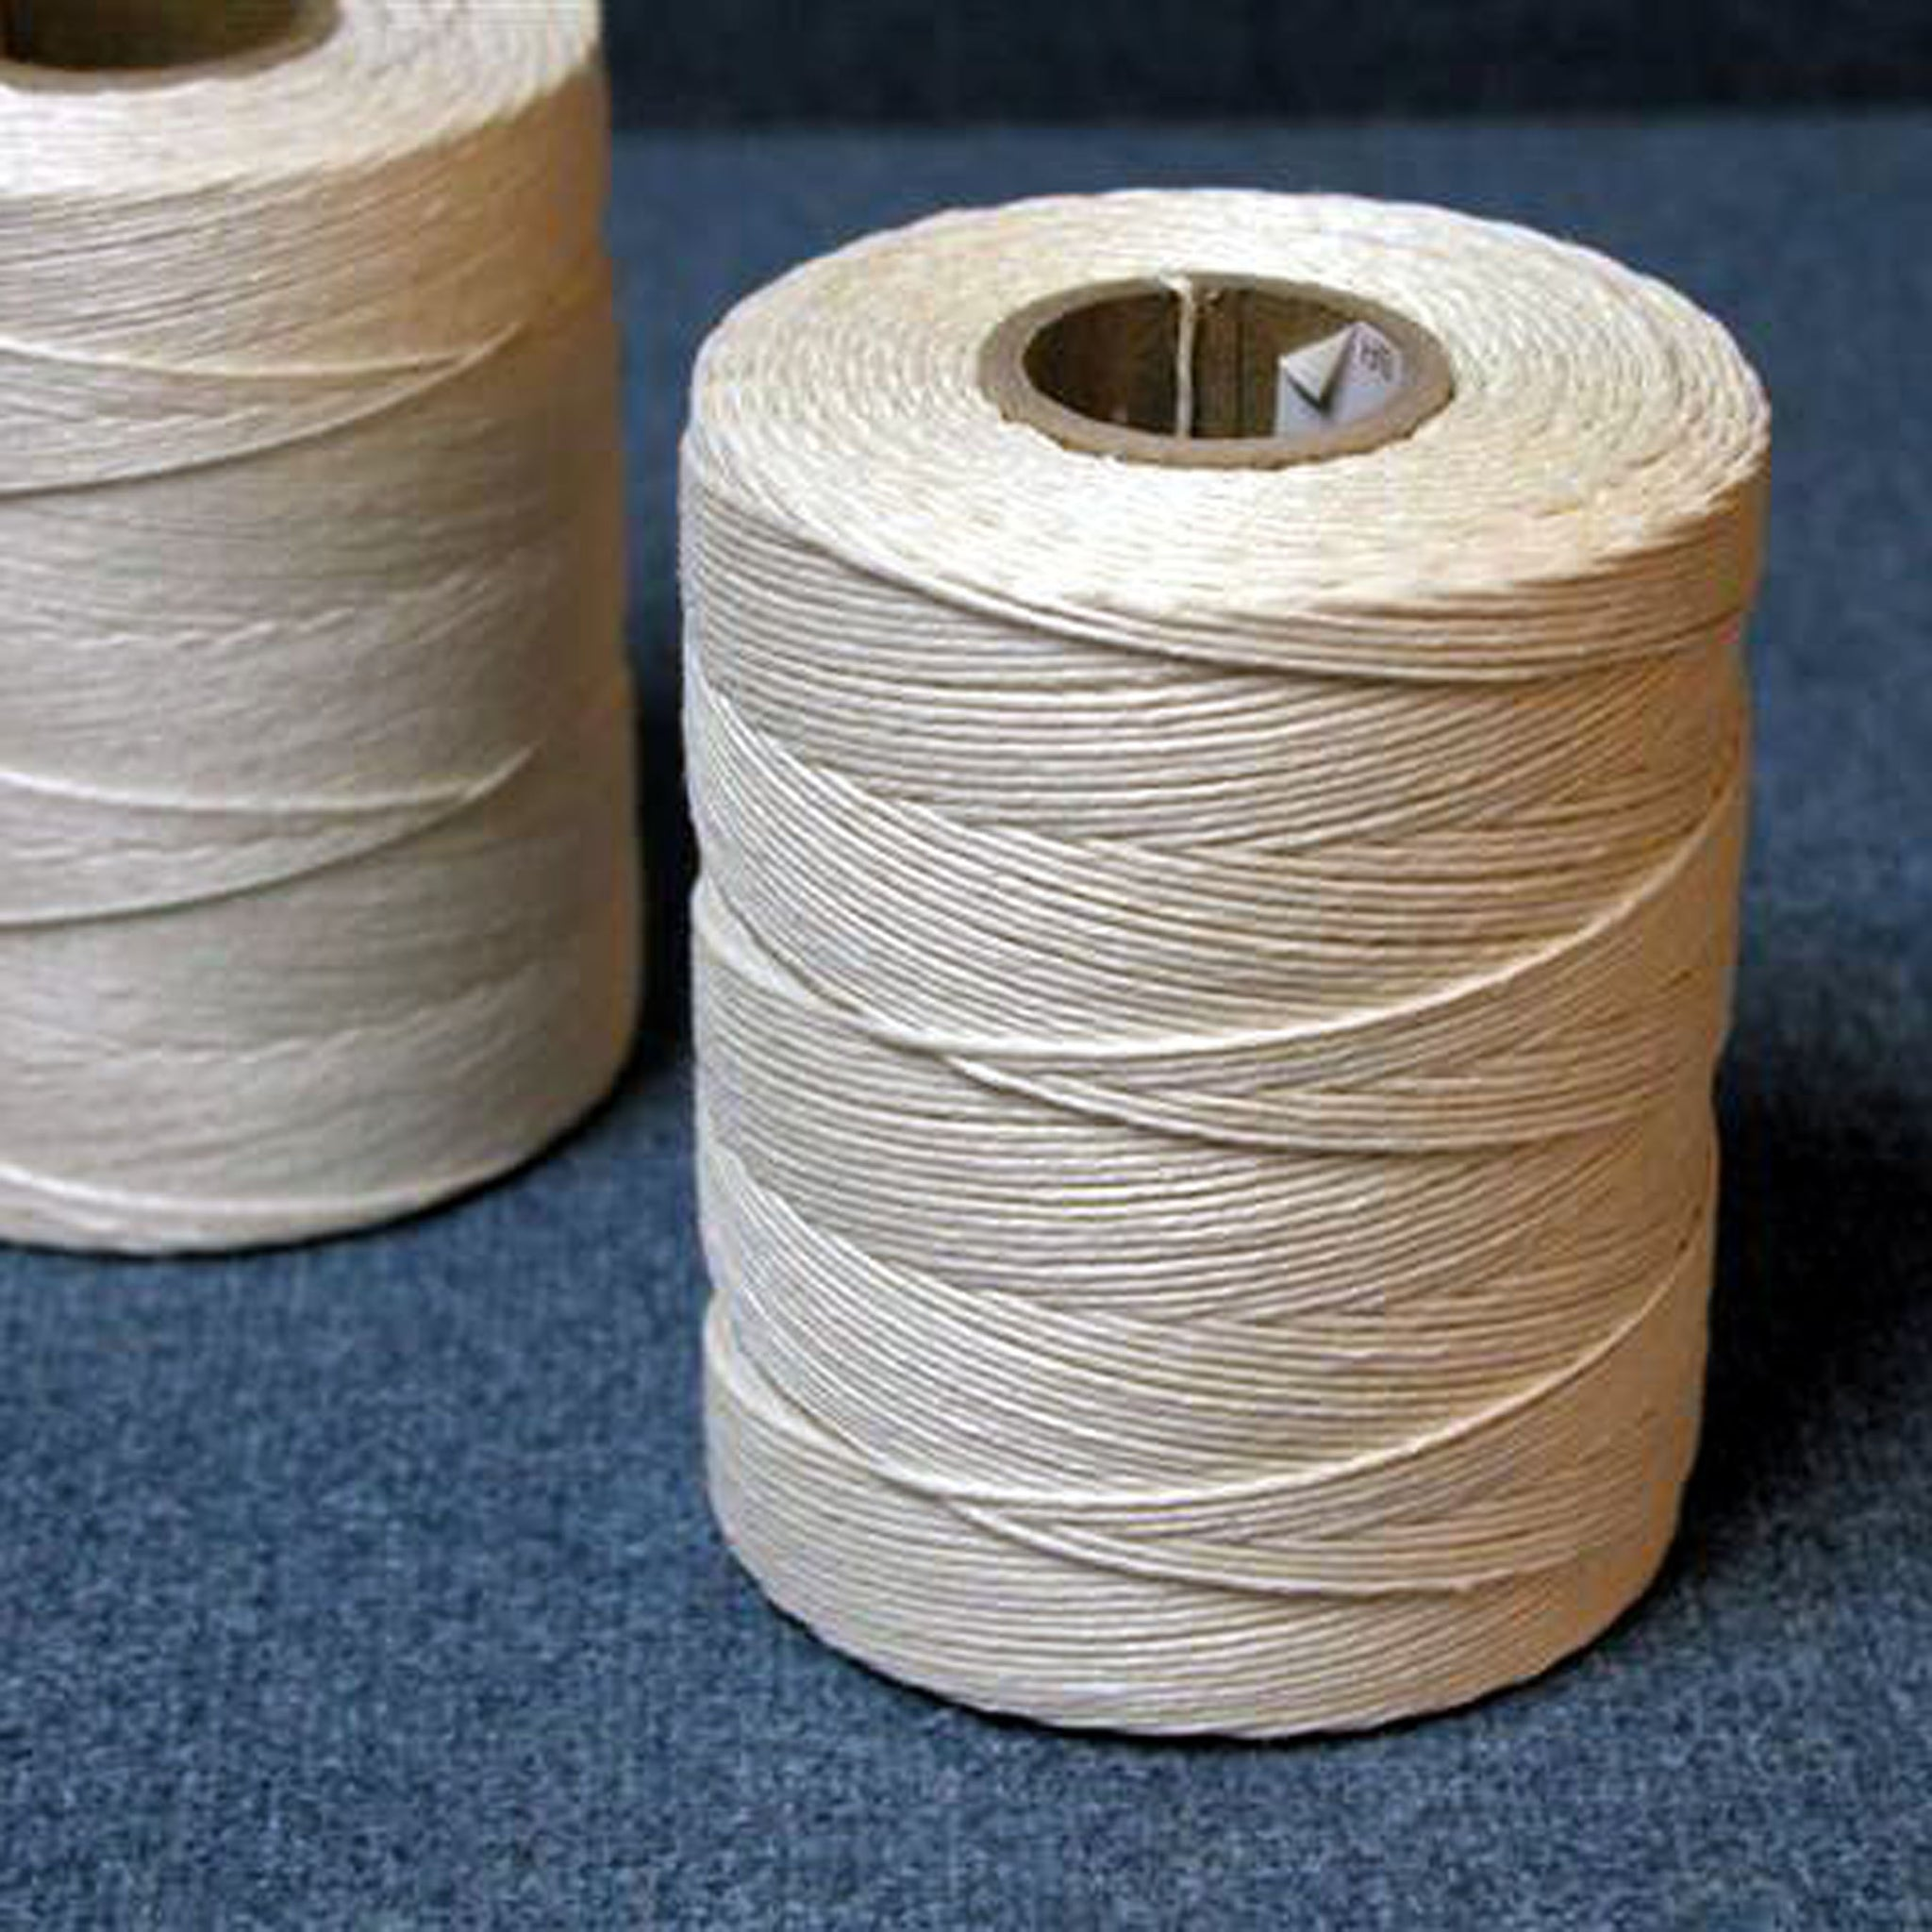 Imported Seven Strand Linen Flax Twine